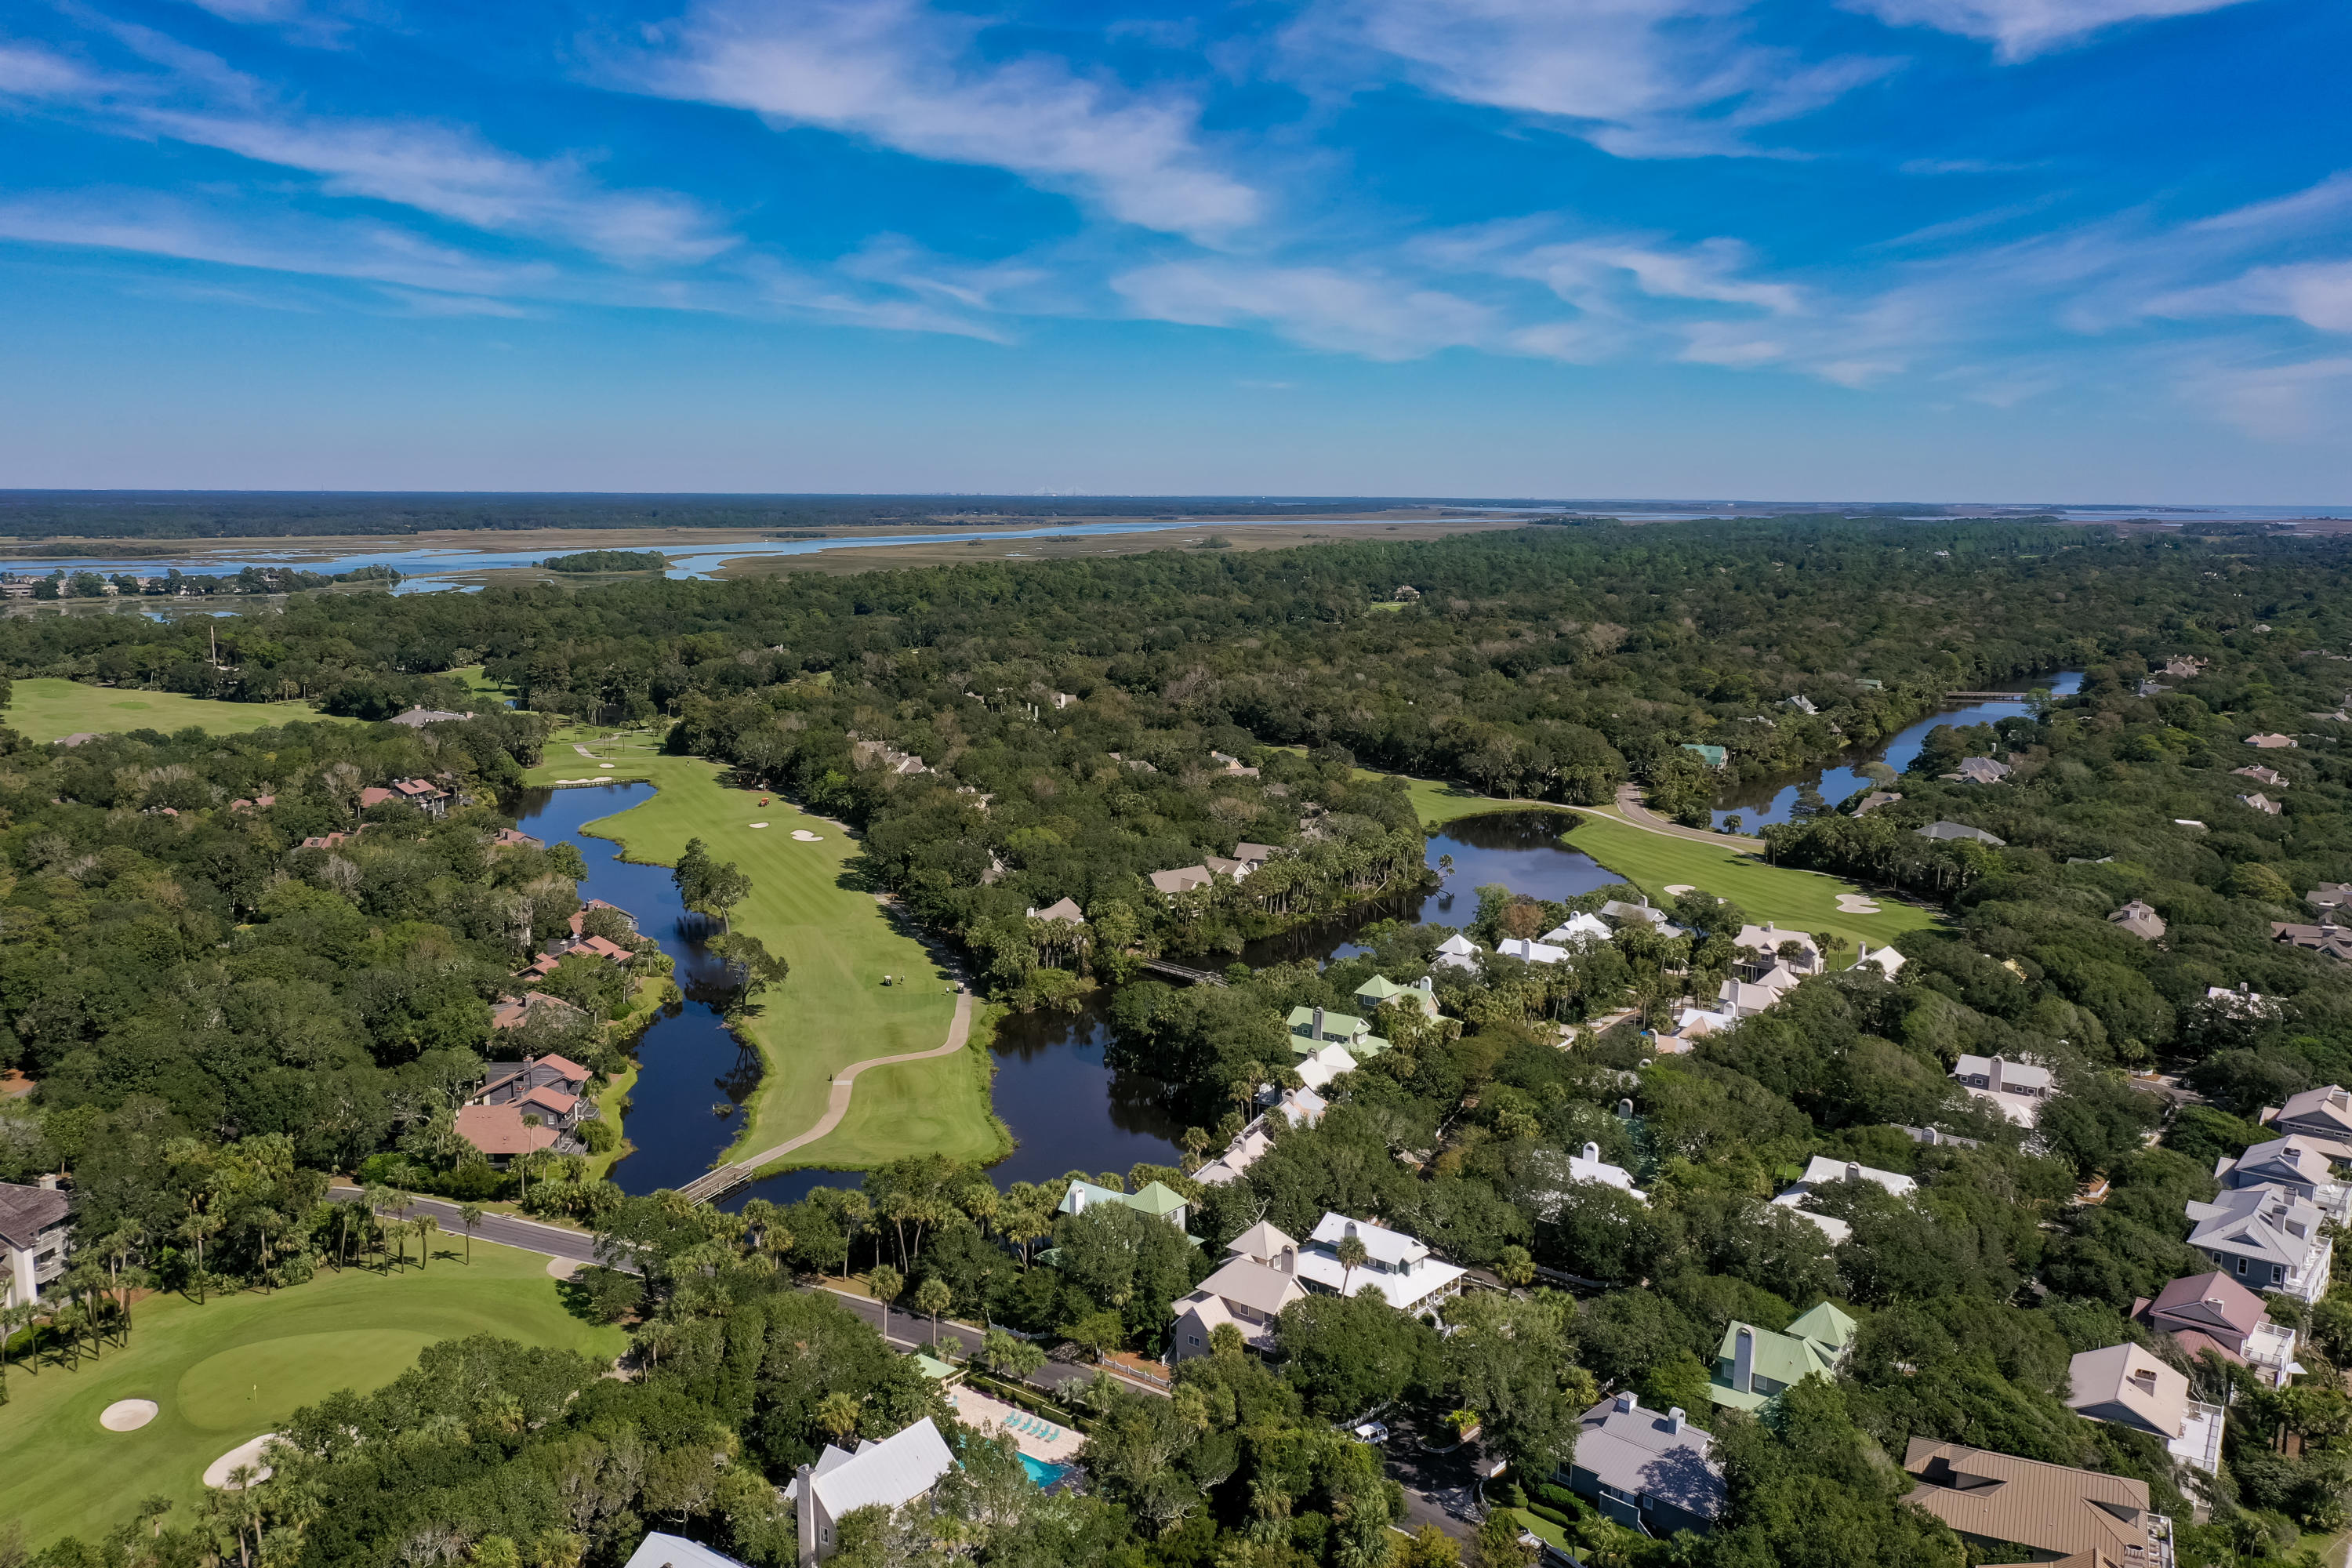 Kiawah Island Homes For Sale - 24 Atlantic Beach, Kiawah Island, SC - 21